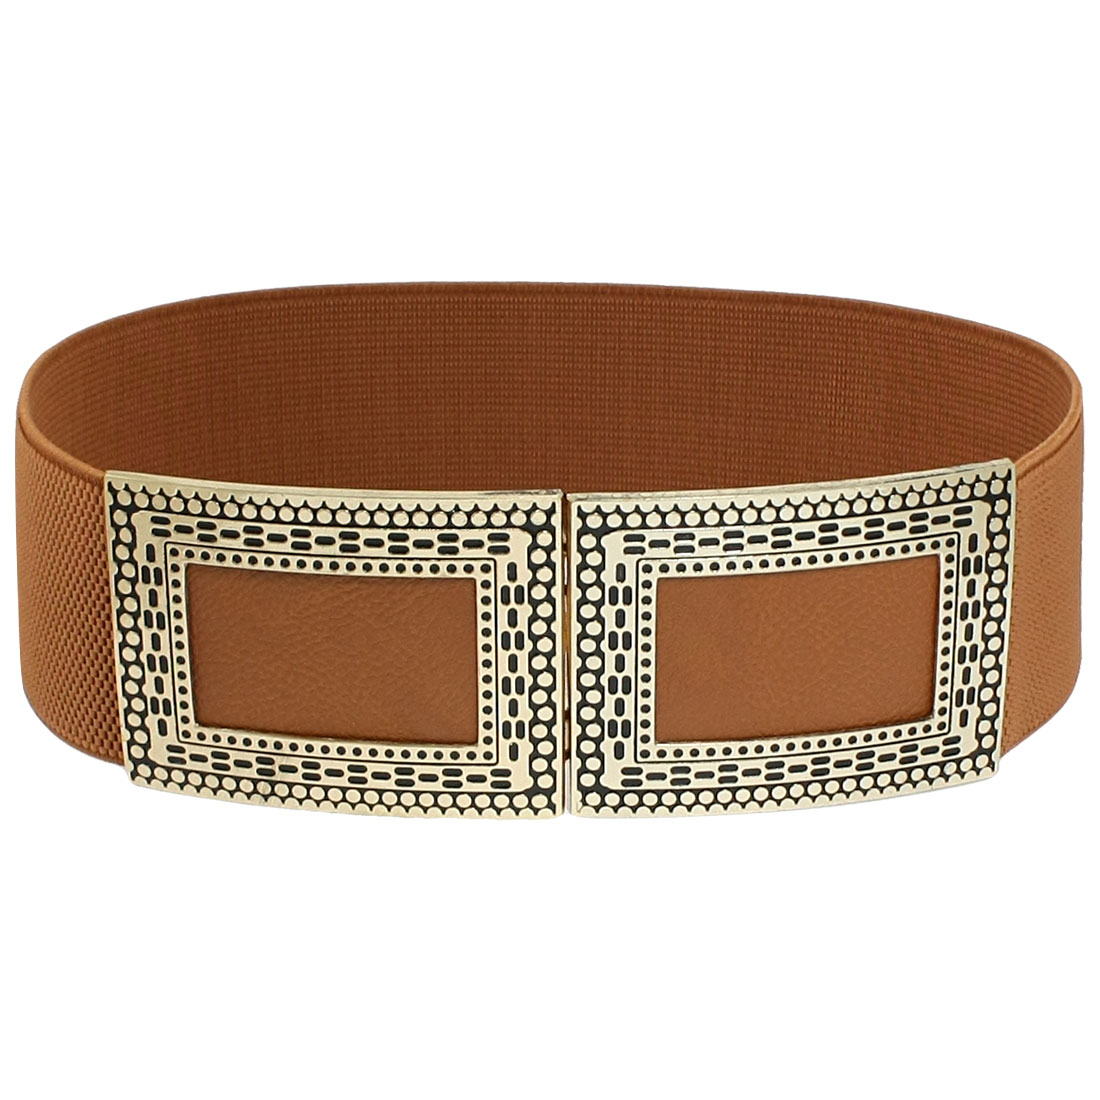 Woman Costume Metal Interlocking Buckle Cinch Band Waist Belt Brown